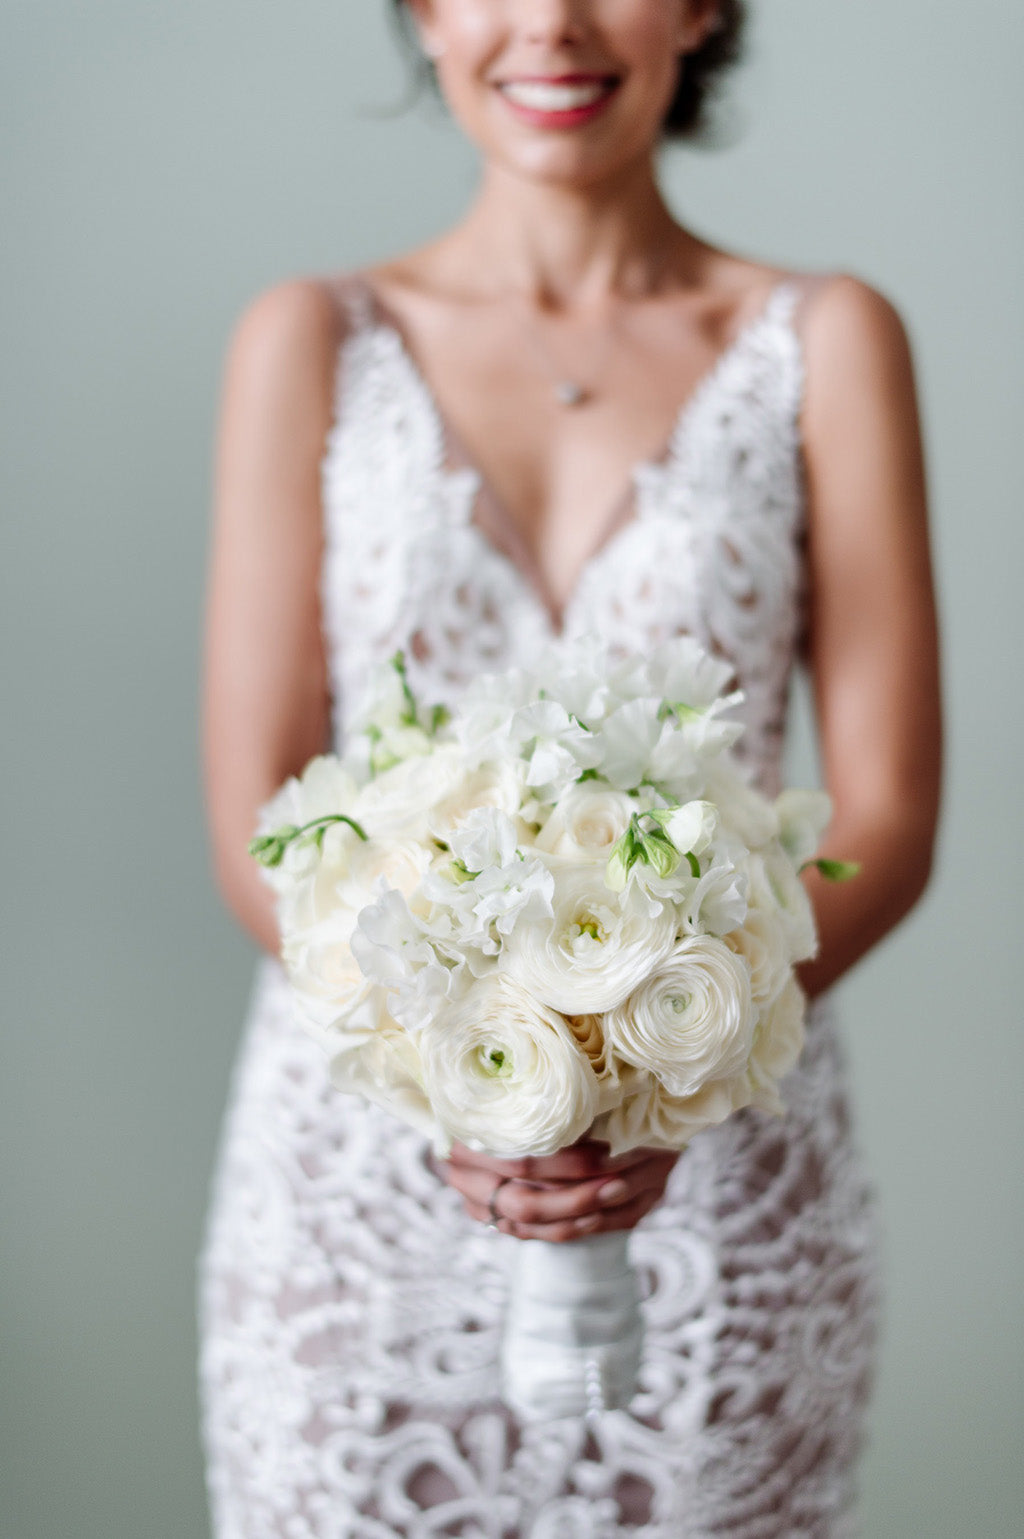 Bride holding white bridal bouquet wedding flowers